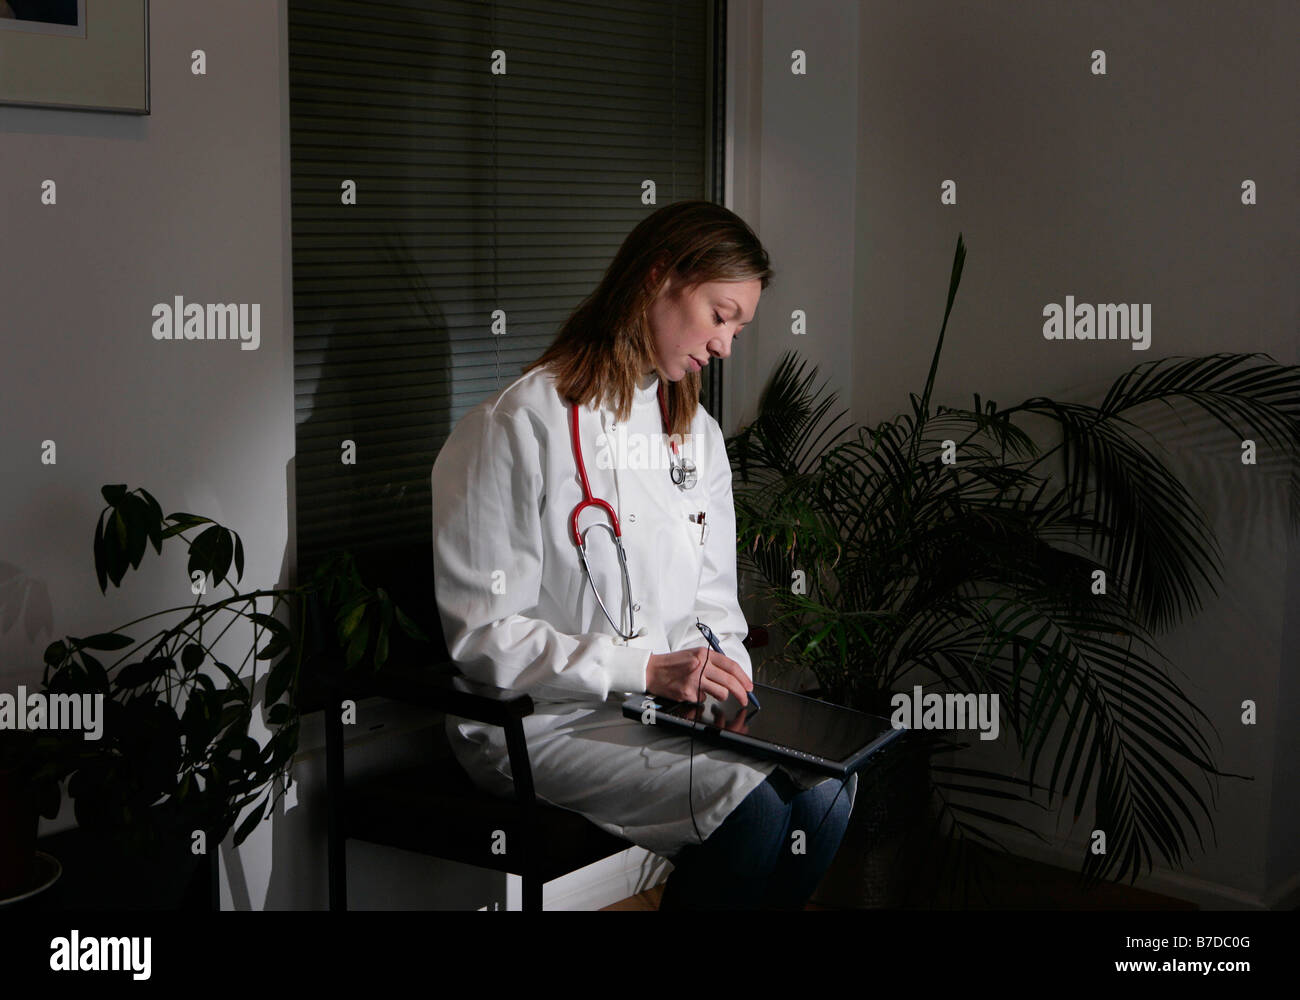 Female doctor using tablet pc Stock Photo